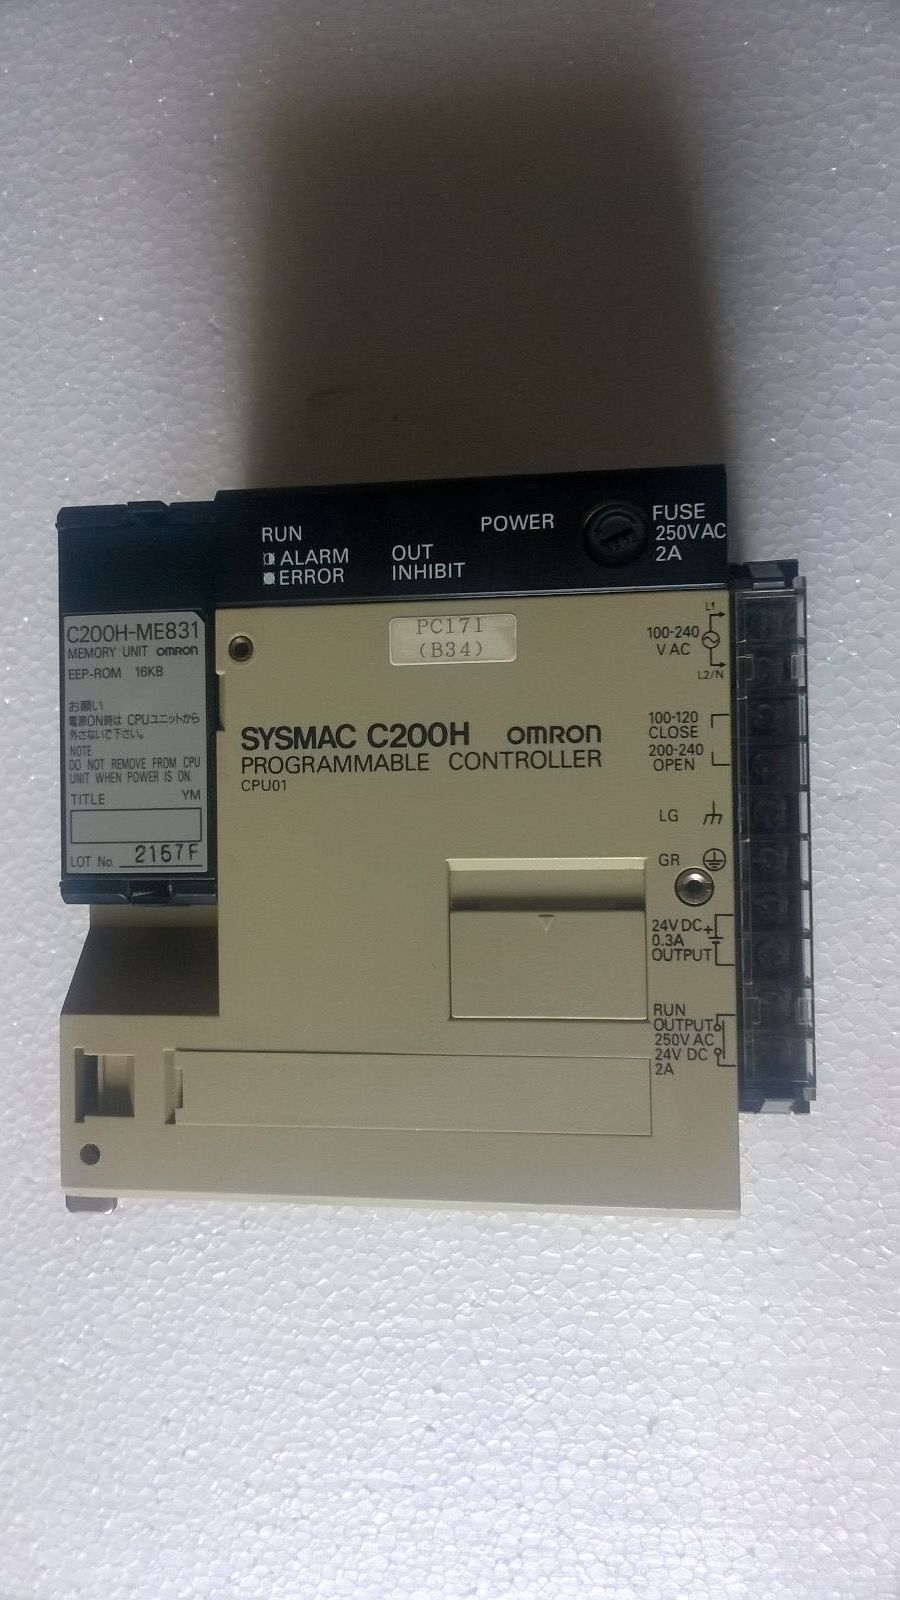 TISUJI DECK CRANE PROGRAMMABLE CARD